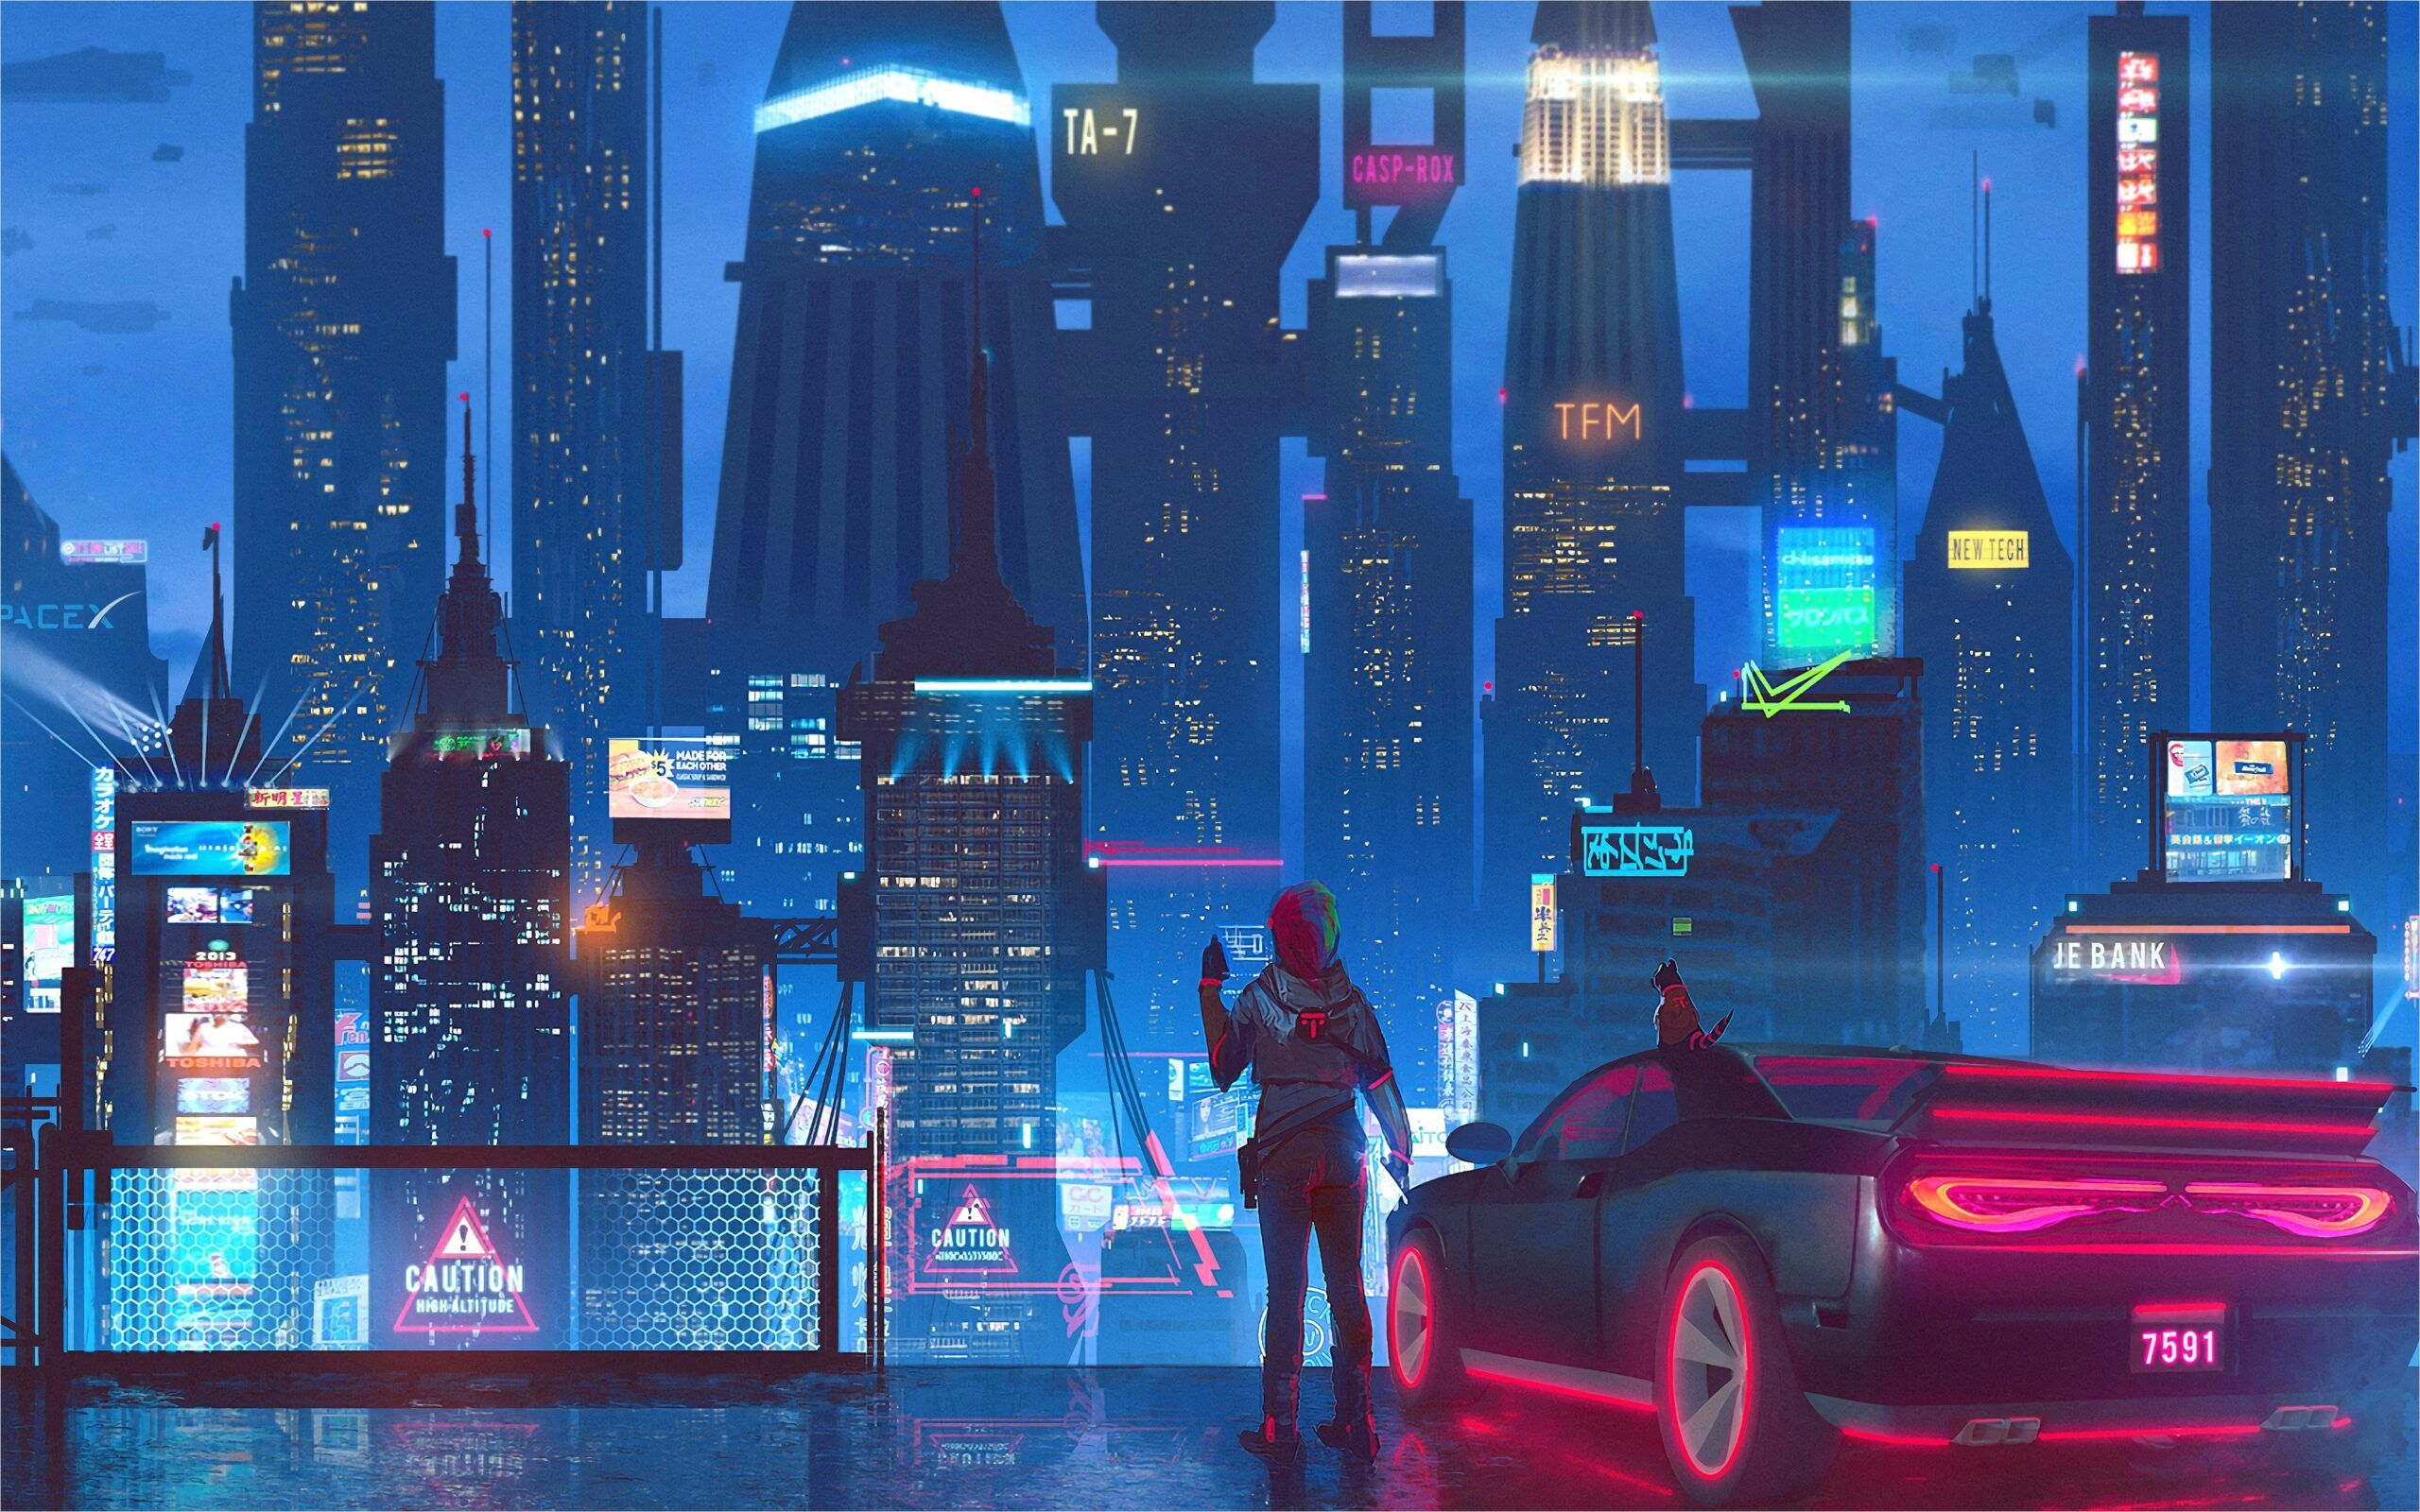 4k Monitor Wallpaper Cyberpunk In 2020 Cyberpunk City Sci Fi City Cyberpunk